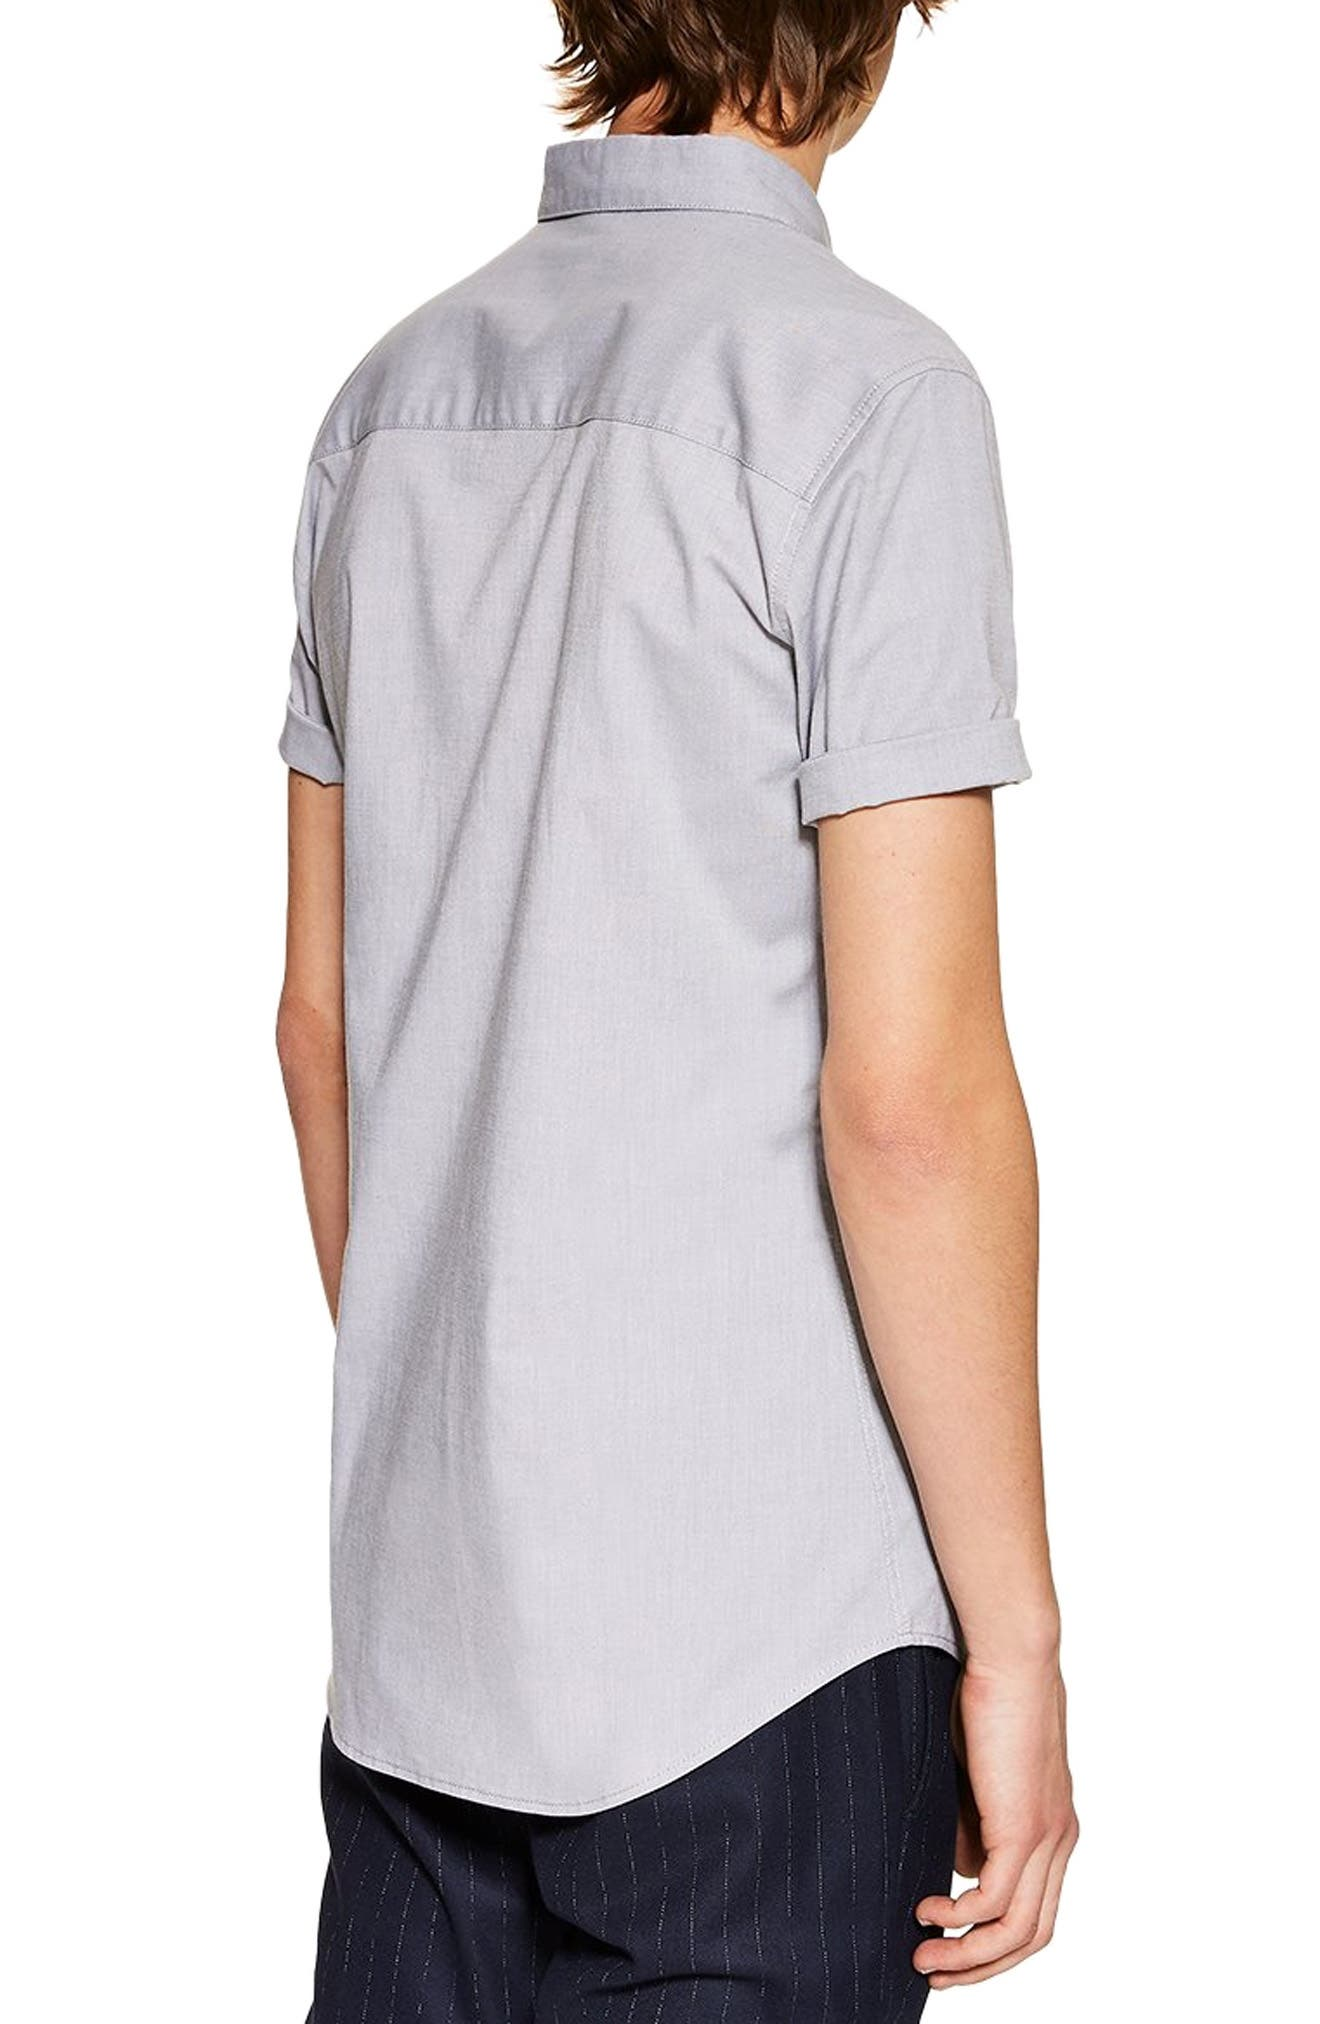 TOPMAN, Muscle Fit Oxford Shirt, Alternate thumbnail 3, color, GREY